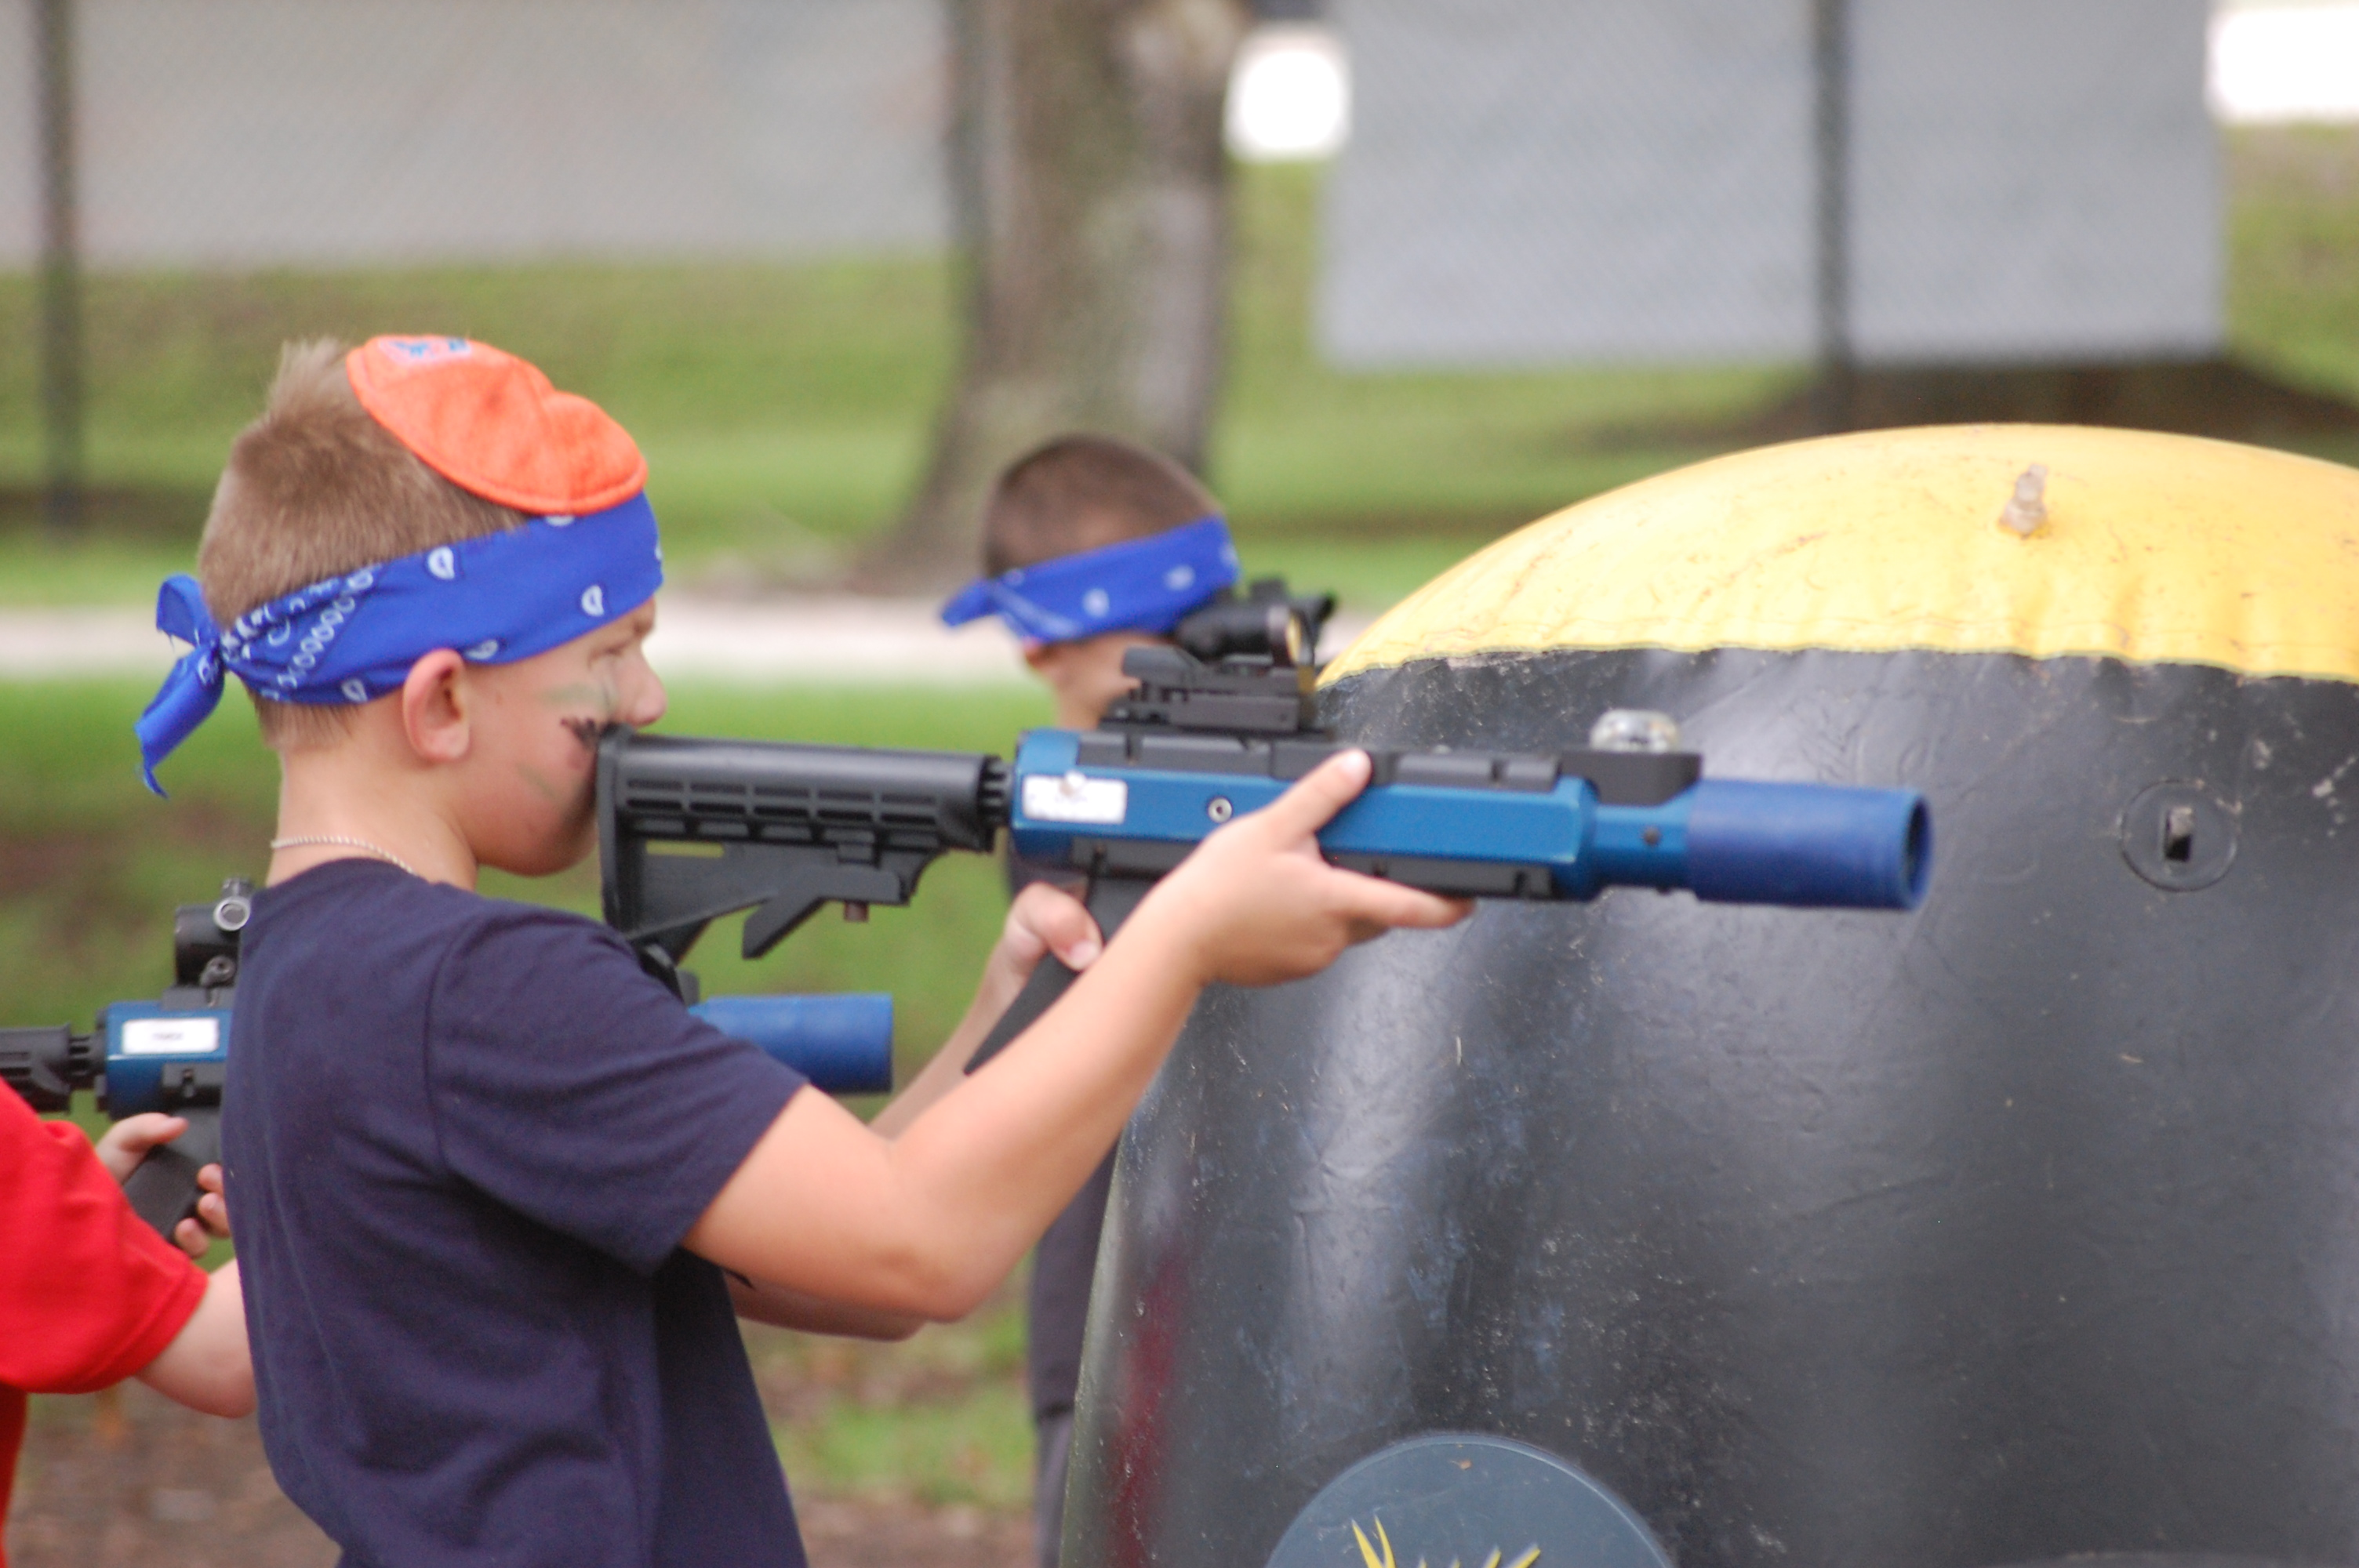 Mobile Laser Tag in Tampa, FL (1)